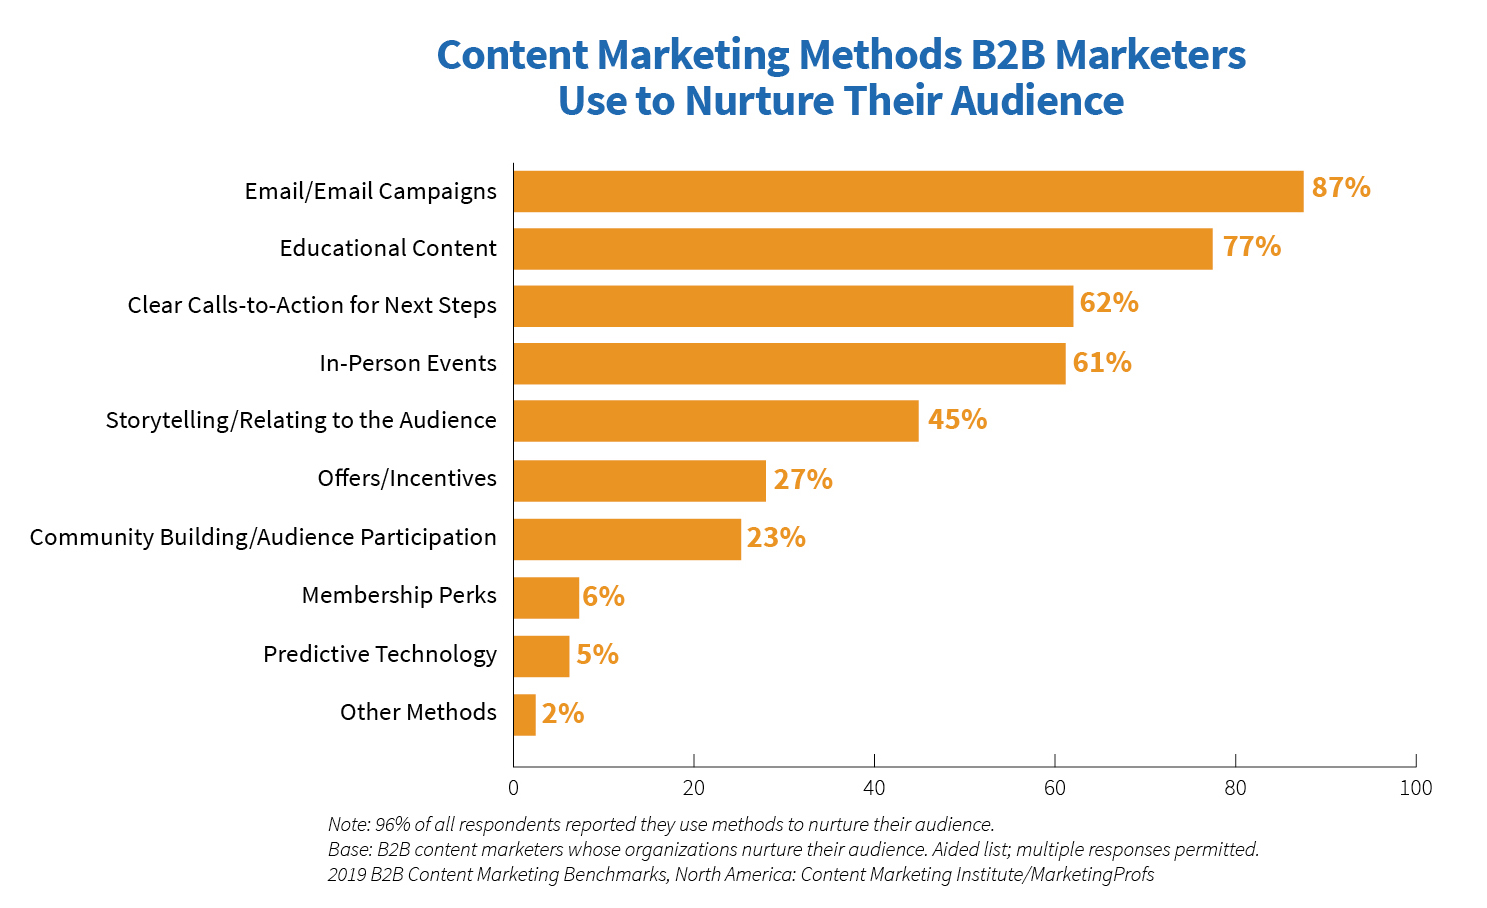 Metody content marketingu dla B2B